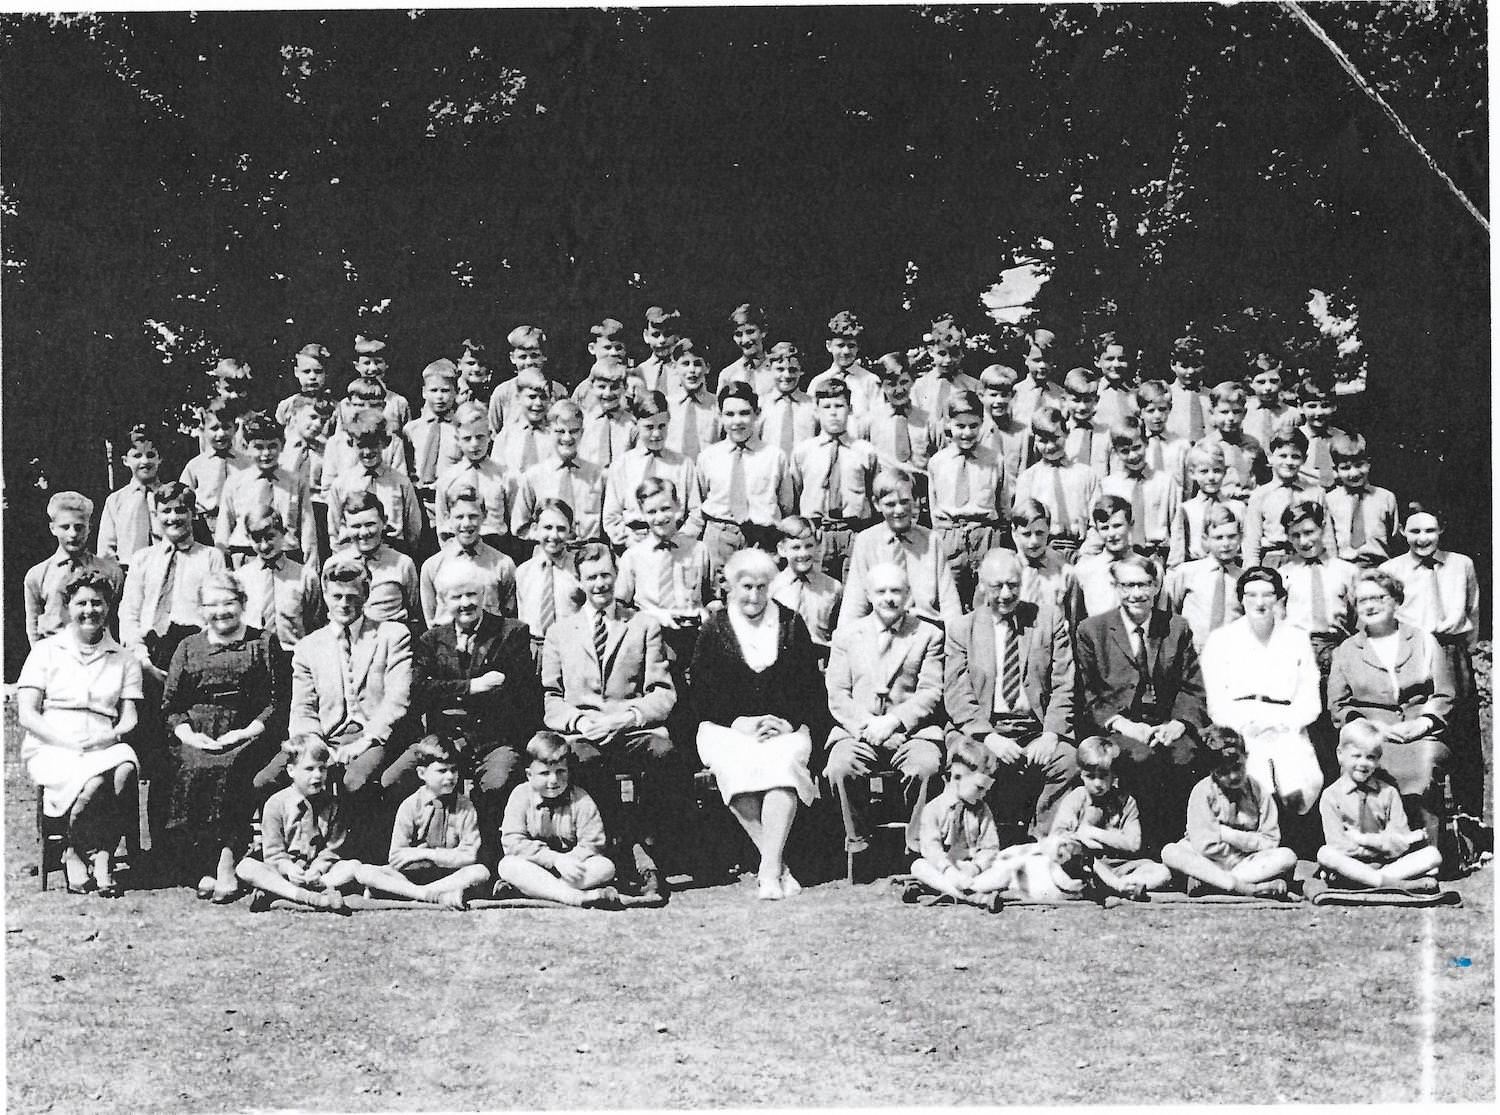 School photo from 1963 when Dr Richard Stillman was a pupil at the school. He's pictured 5th from the right on the third row. Seated at the front are the teachers. From left: Mrs Wyre, Miss Gingell, Mr Stamford, Mr 'Ding Dong' Bell, Headmaster Mr George Rutherford, Mrs Molly Sinclair, Captain King, Mr Esdule, Mr Rocket, Matron Miss Law and Miss Grace